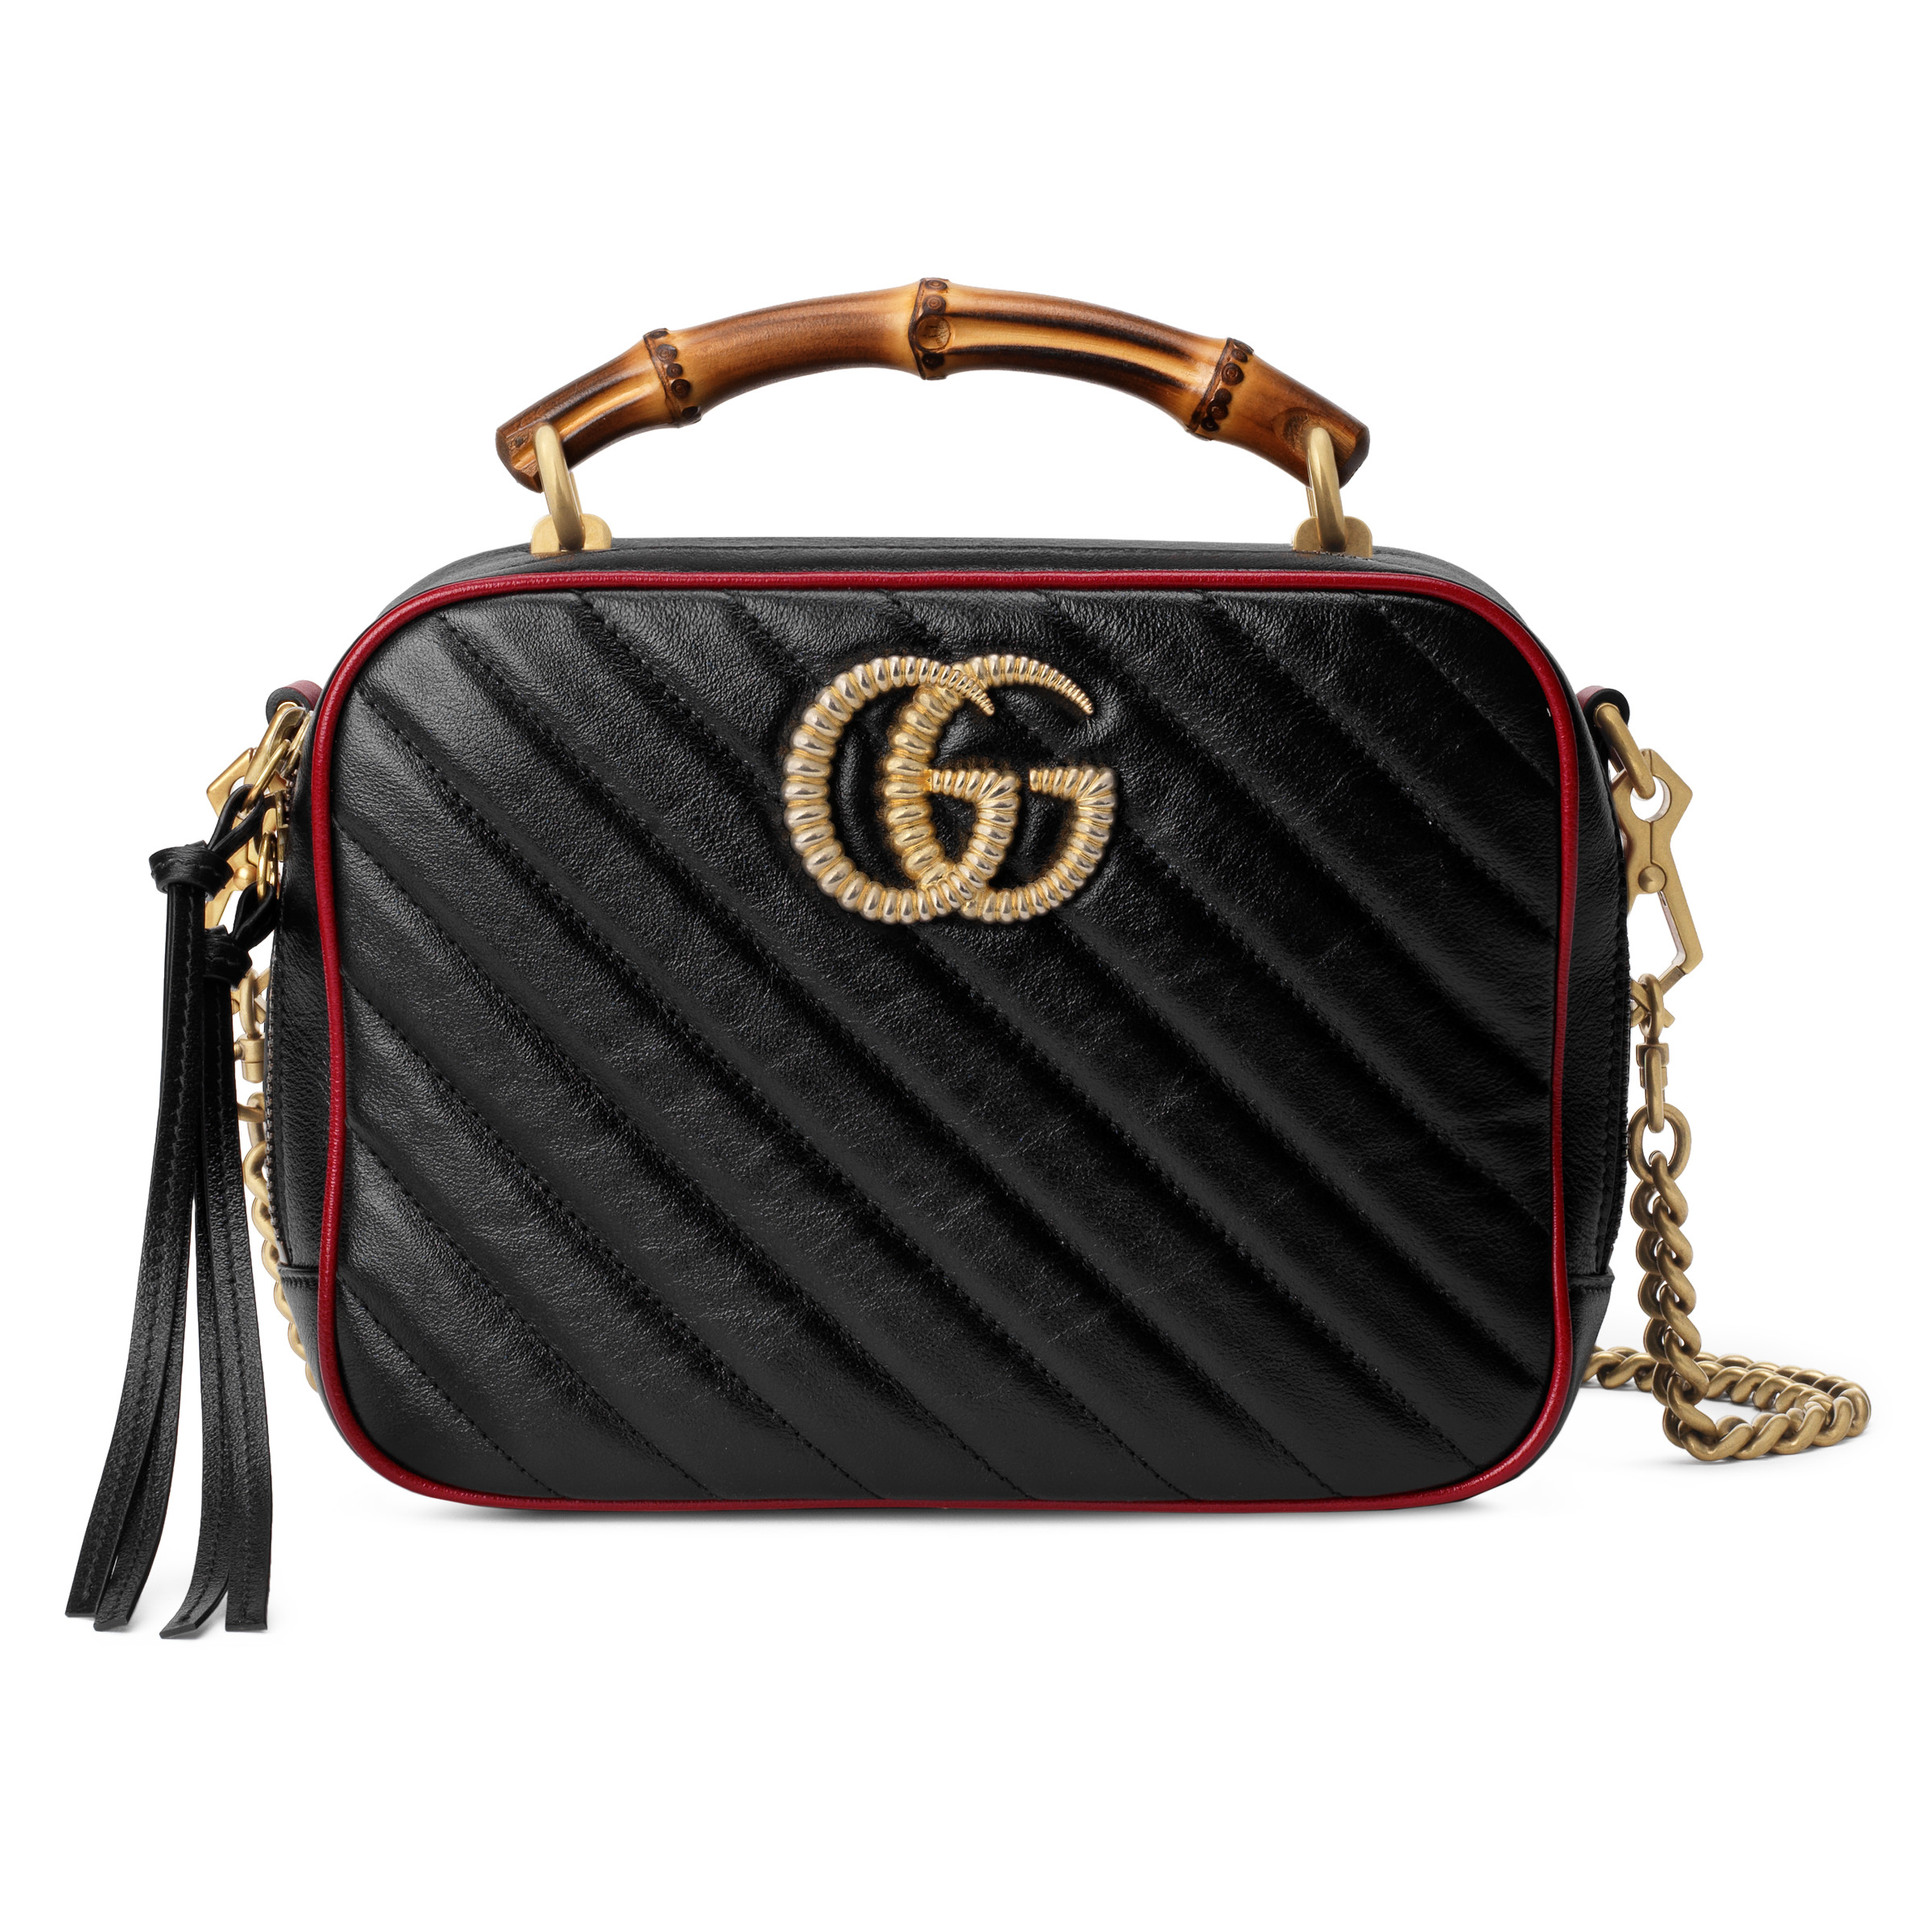 GG Marmont small shoulder bag with bamboo